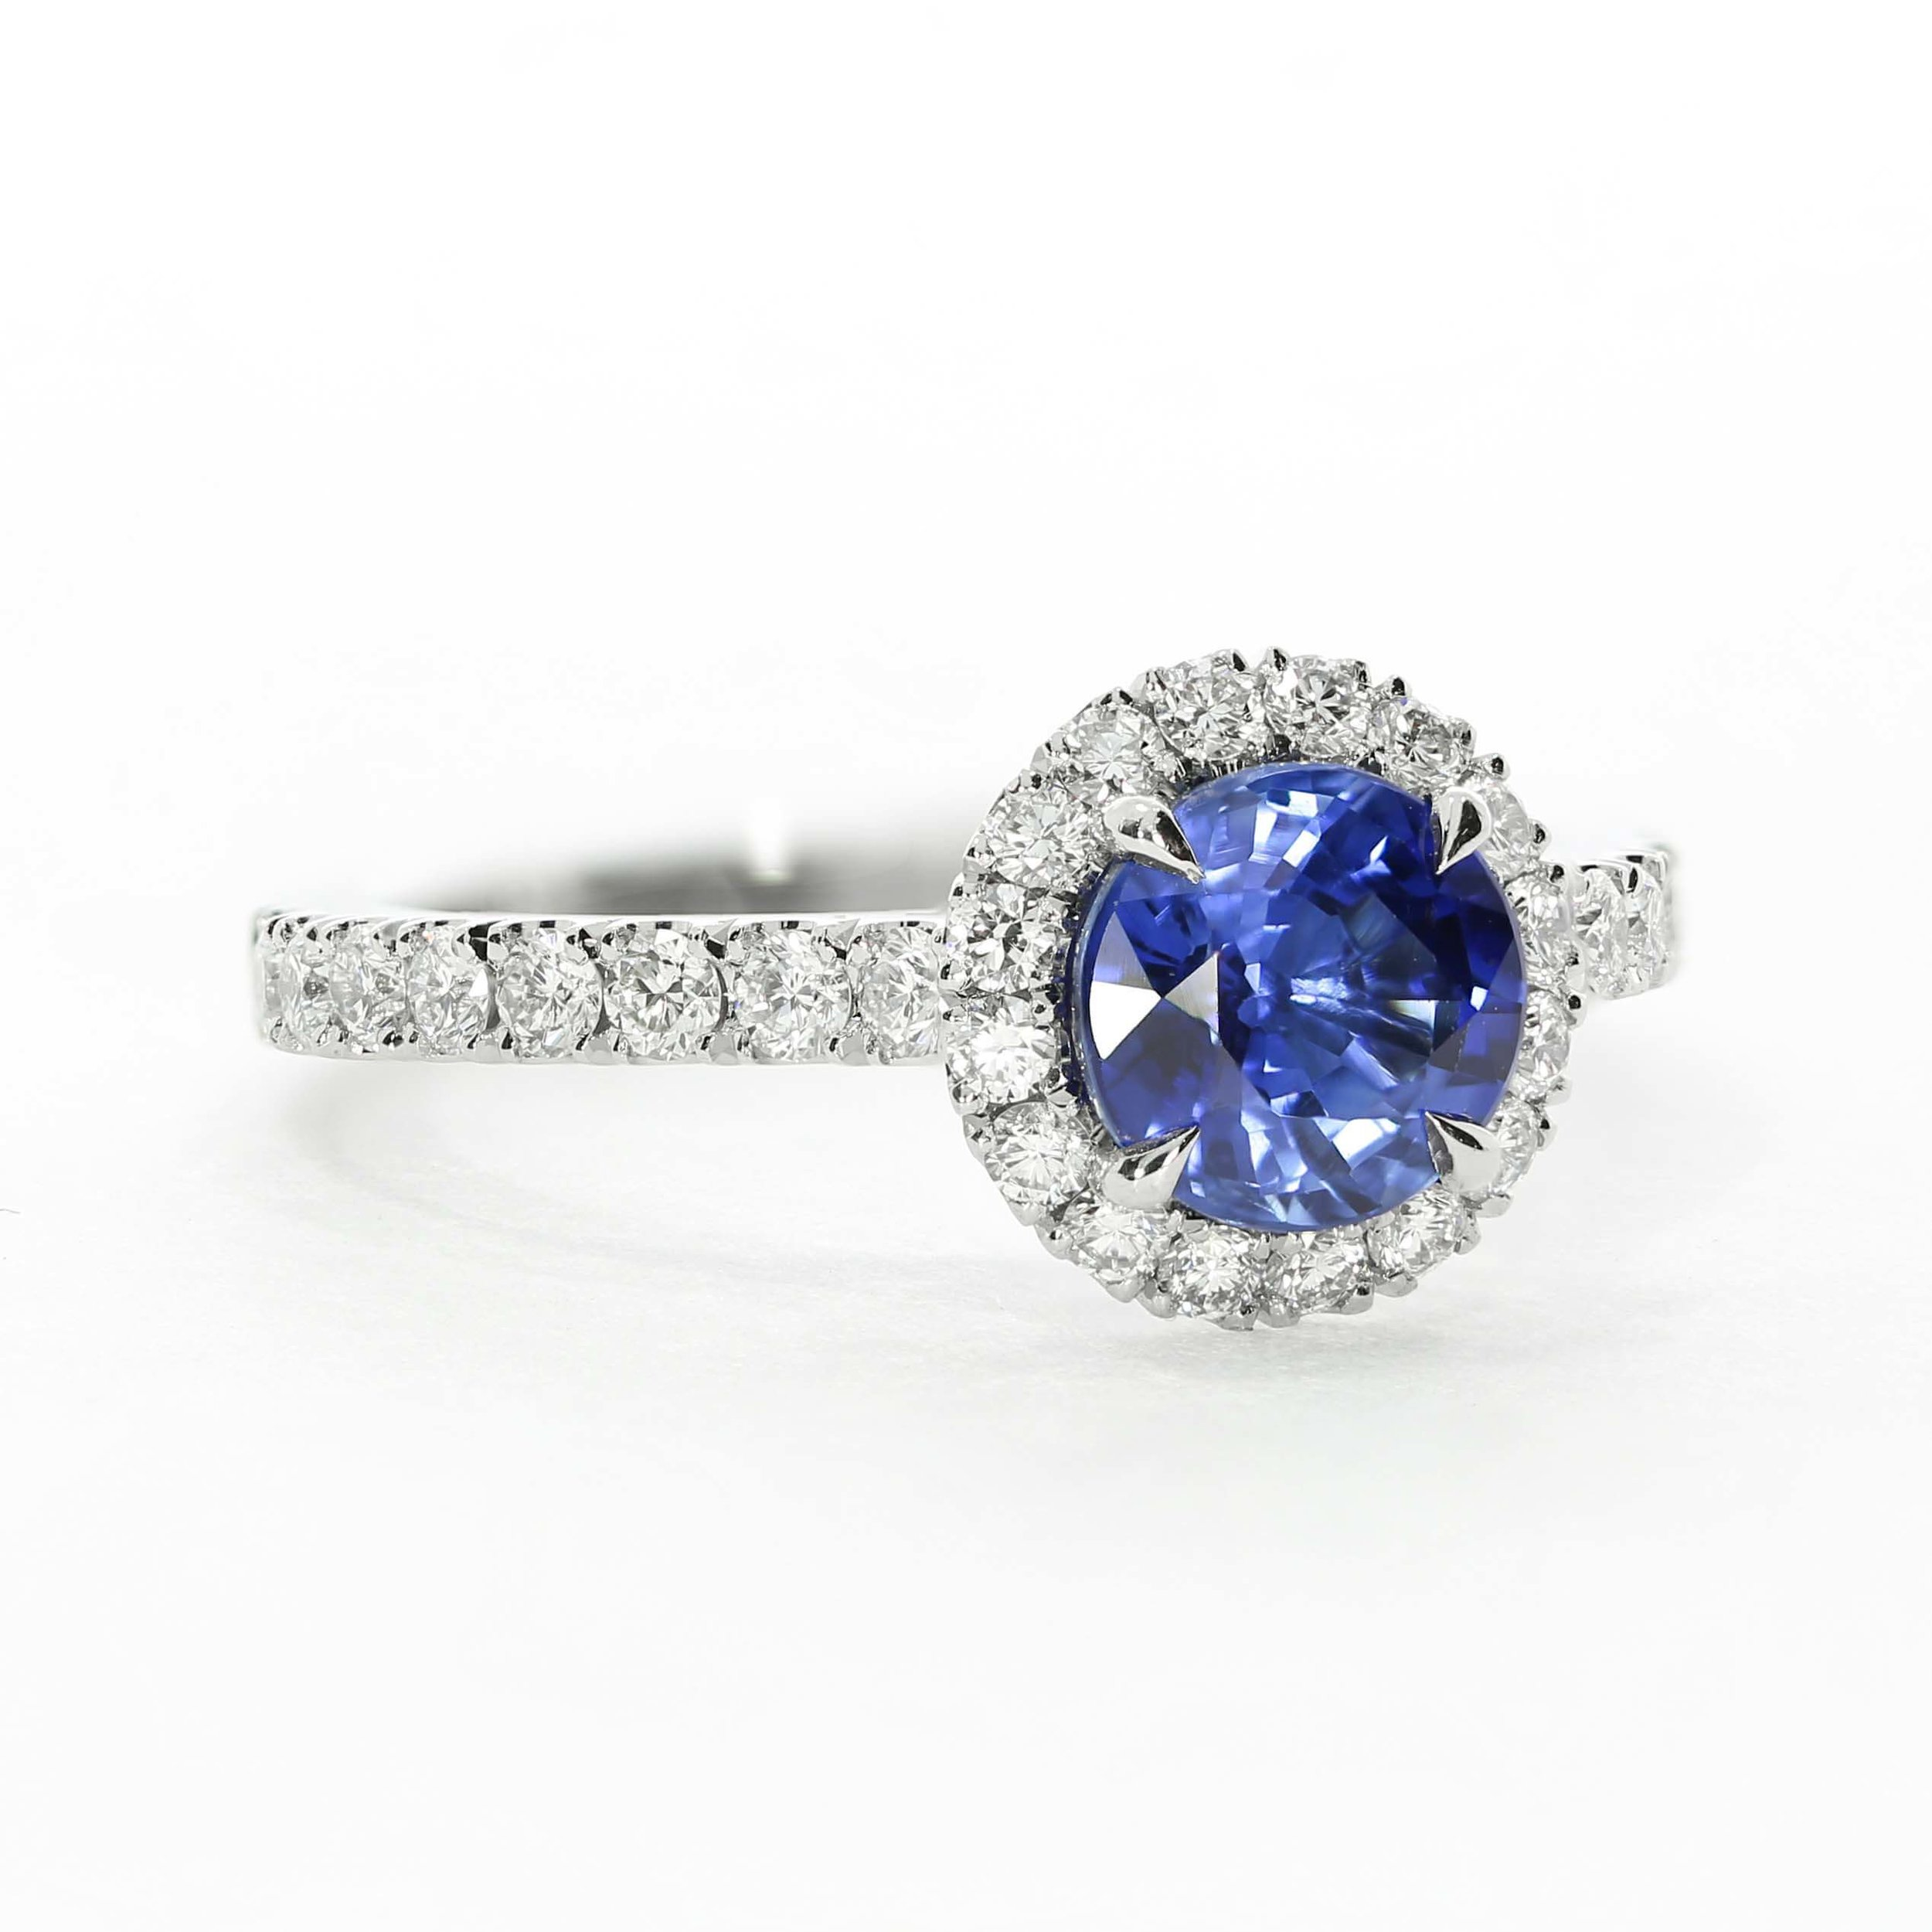 what-coloured-gemstone-to-pick-for-your-engagement-ring-wedding-band-jewellery-personality-sapphire-ruby-emerald-fancy-colour-diamond-treated-halle-berry-eva-longoria-kate-middleton-princess-diana-GIA-london-hatton-garden-jeweller-queensmith-master-jewellers